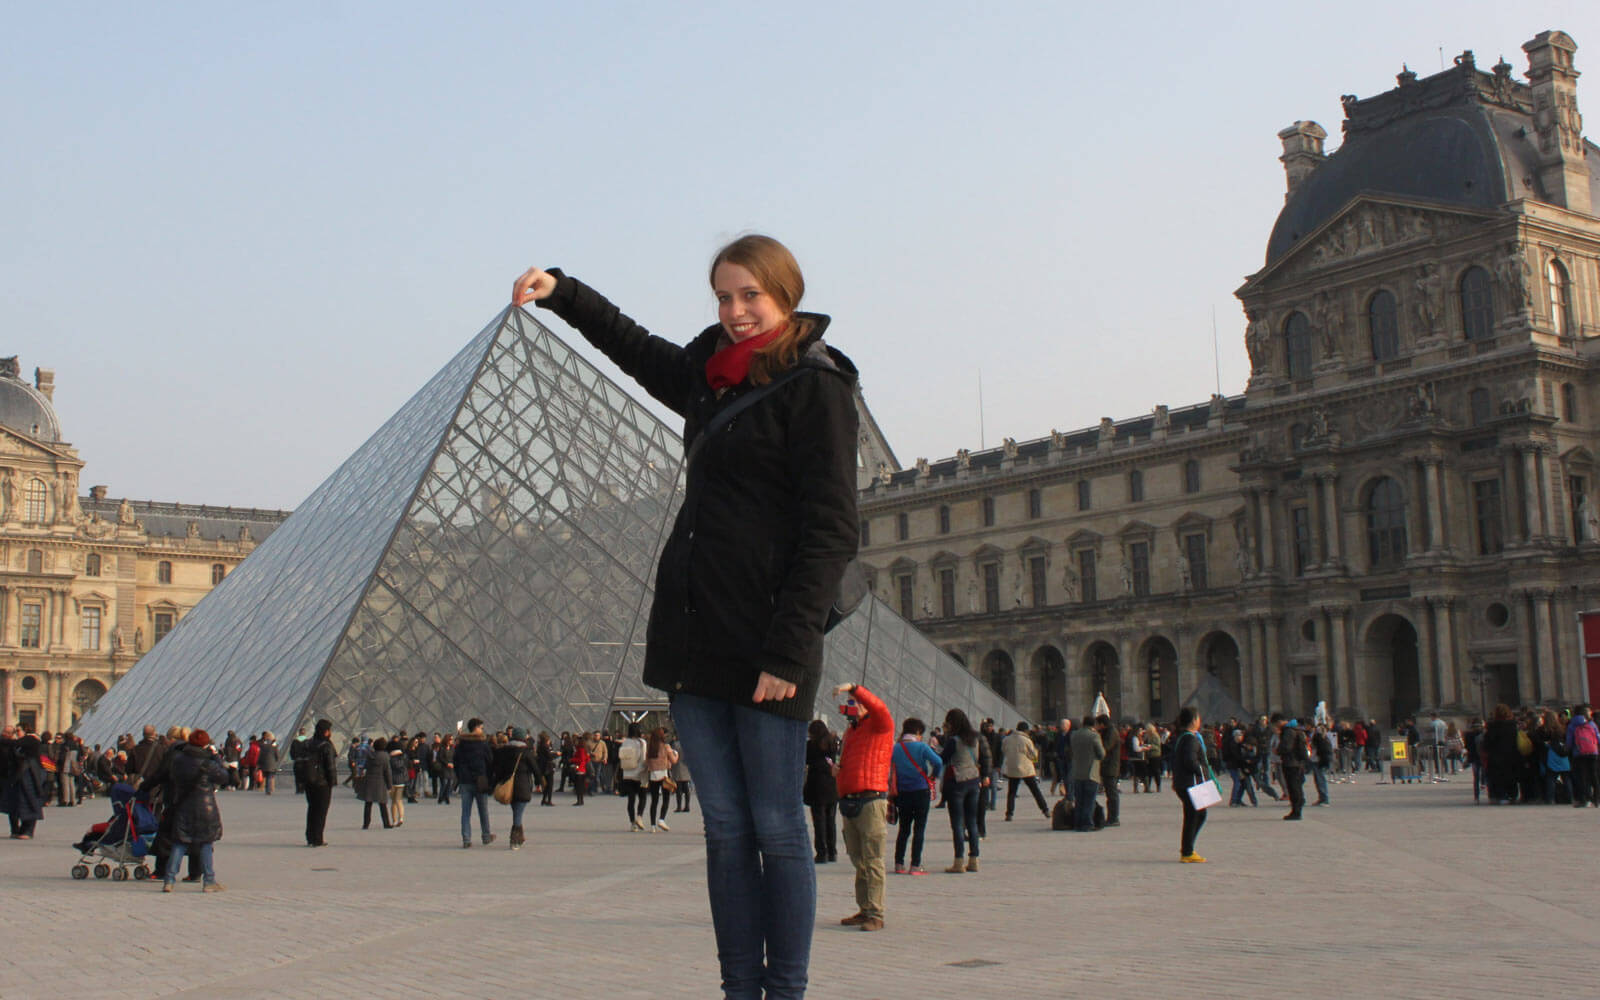 Luisa vor dem Louvre in Paris